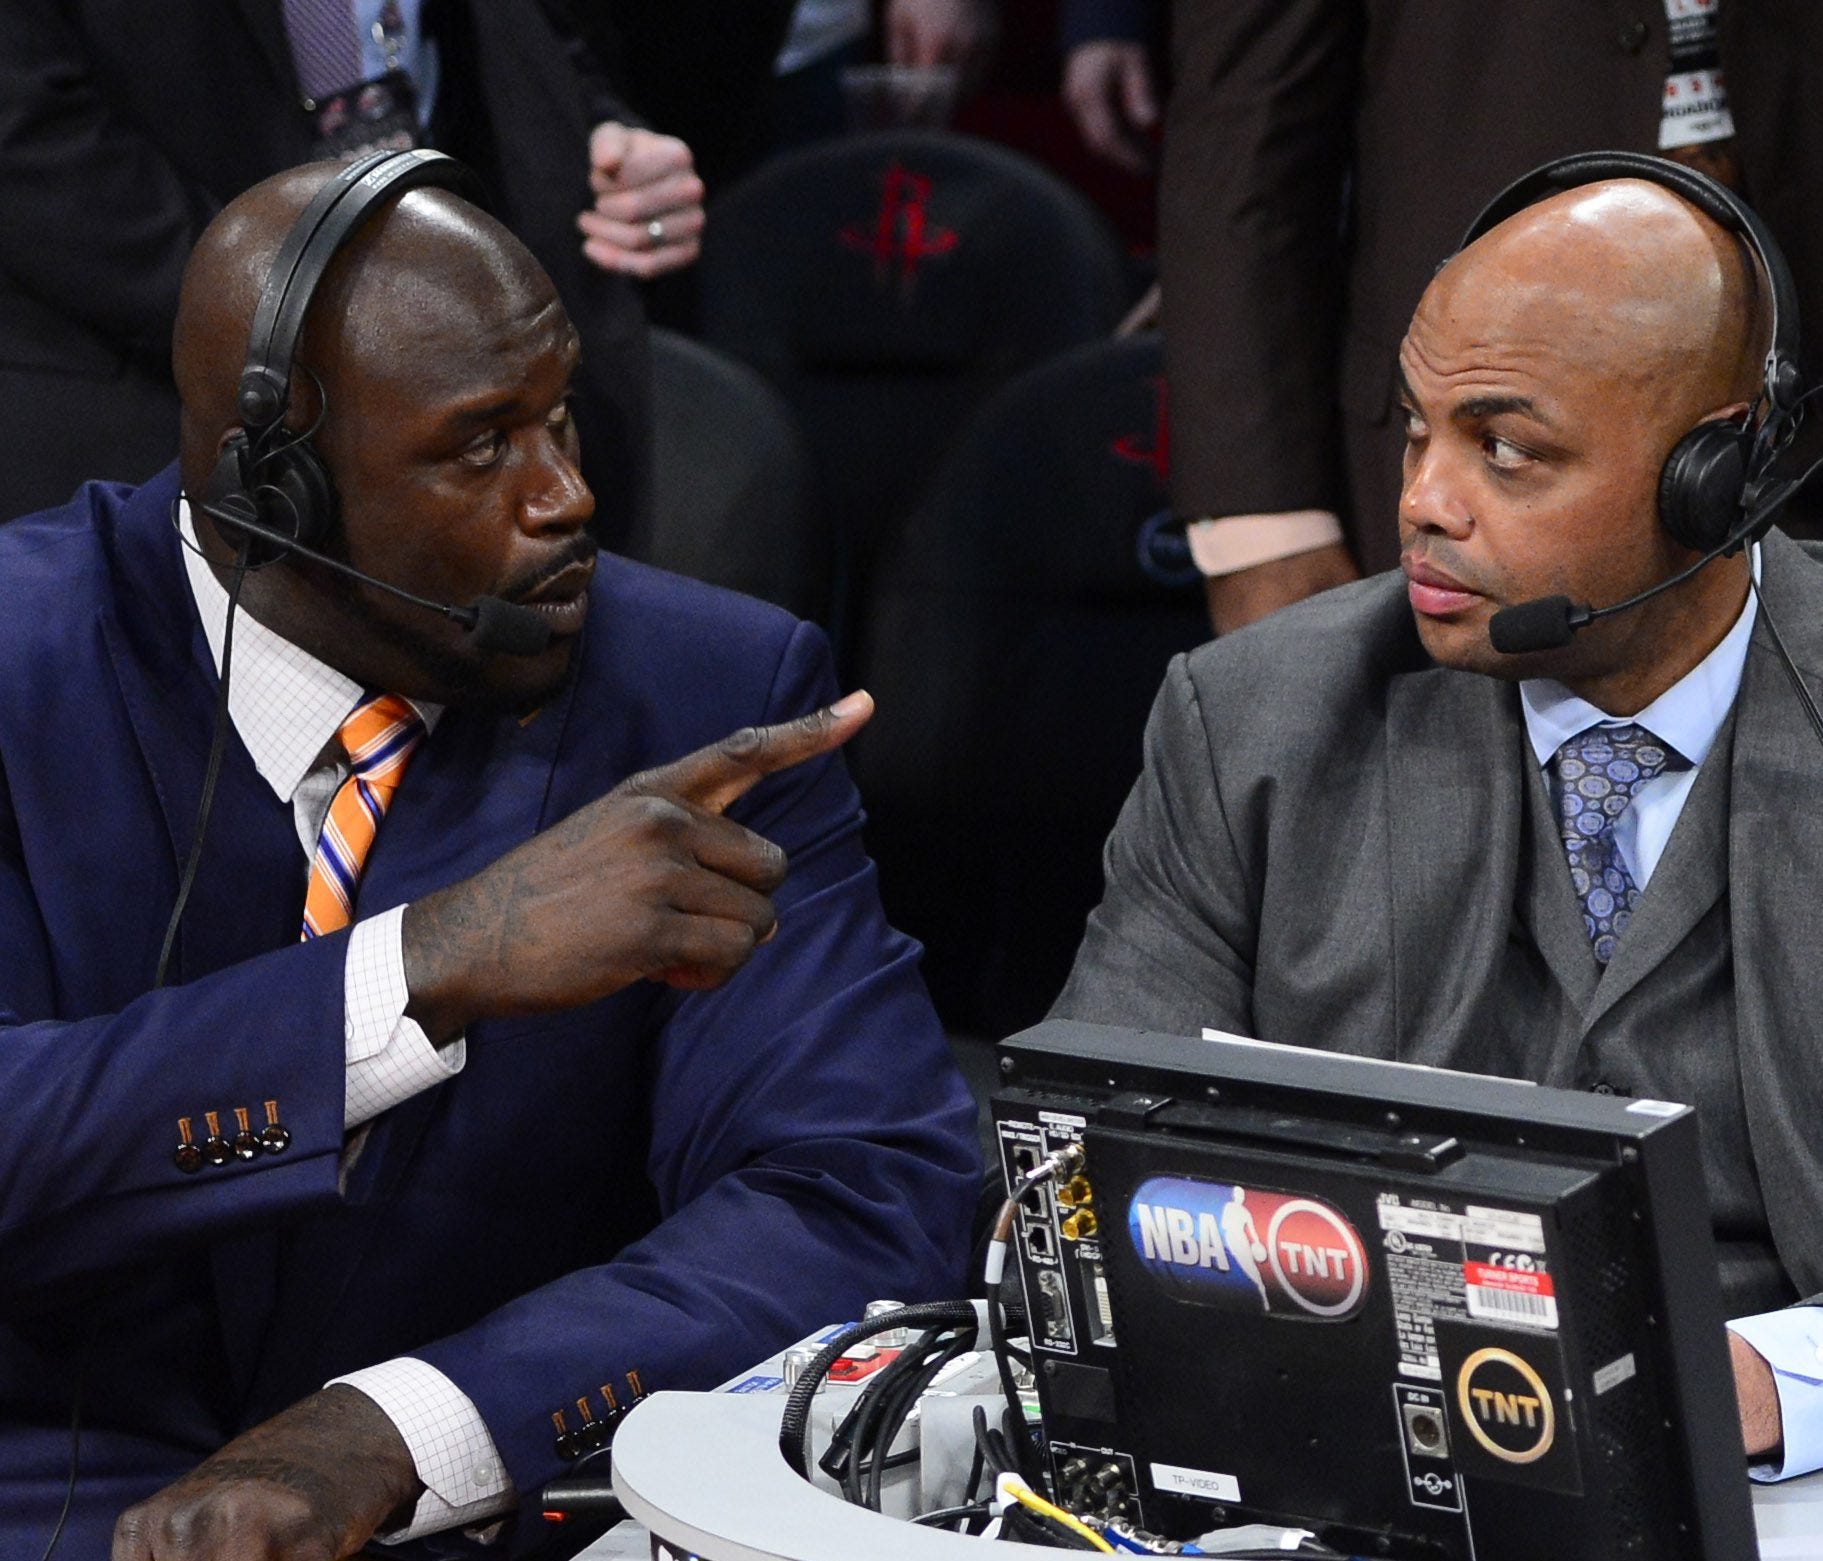 Feb 16, 2013; Houston, TX, USA; TNT broadcaster Shaquille O'Neal (left) and Charles Barkley talk during the 2013 NBA All-Star slam dunk contest at the Toyota Center. Mandatory Credit: Bob Donnan-USA TODAY Sports ORG XMIT: USATSI-128540 ORIG FILE ID: